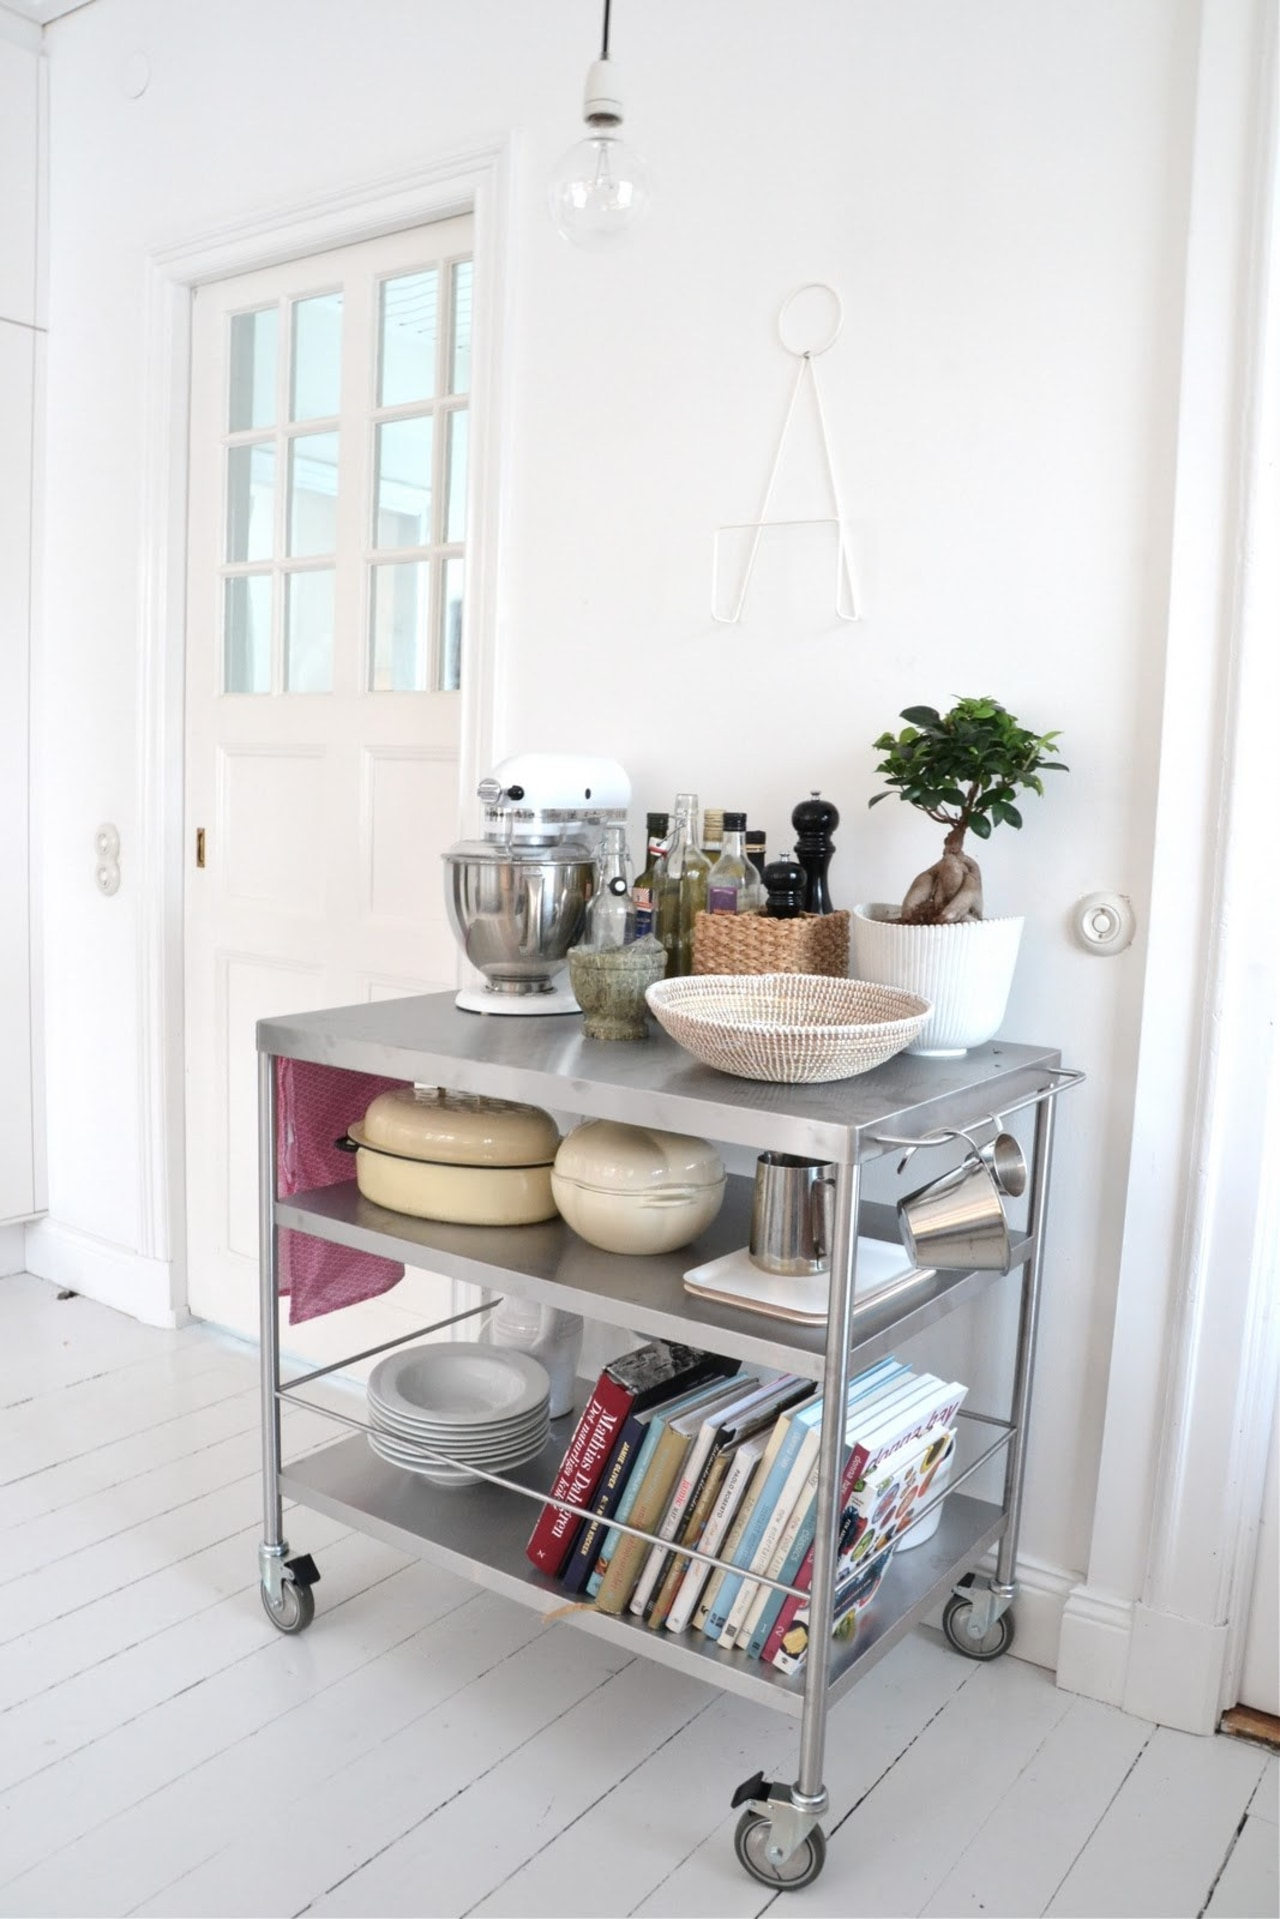 This kitchen cart from Ikea can fit floor, furniture, home, living room, product, shelf, shelving, table, white